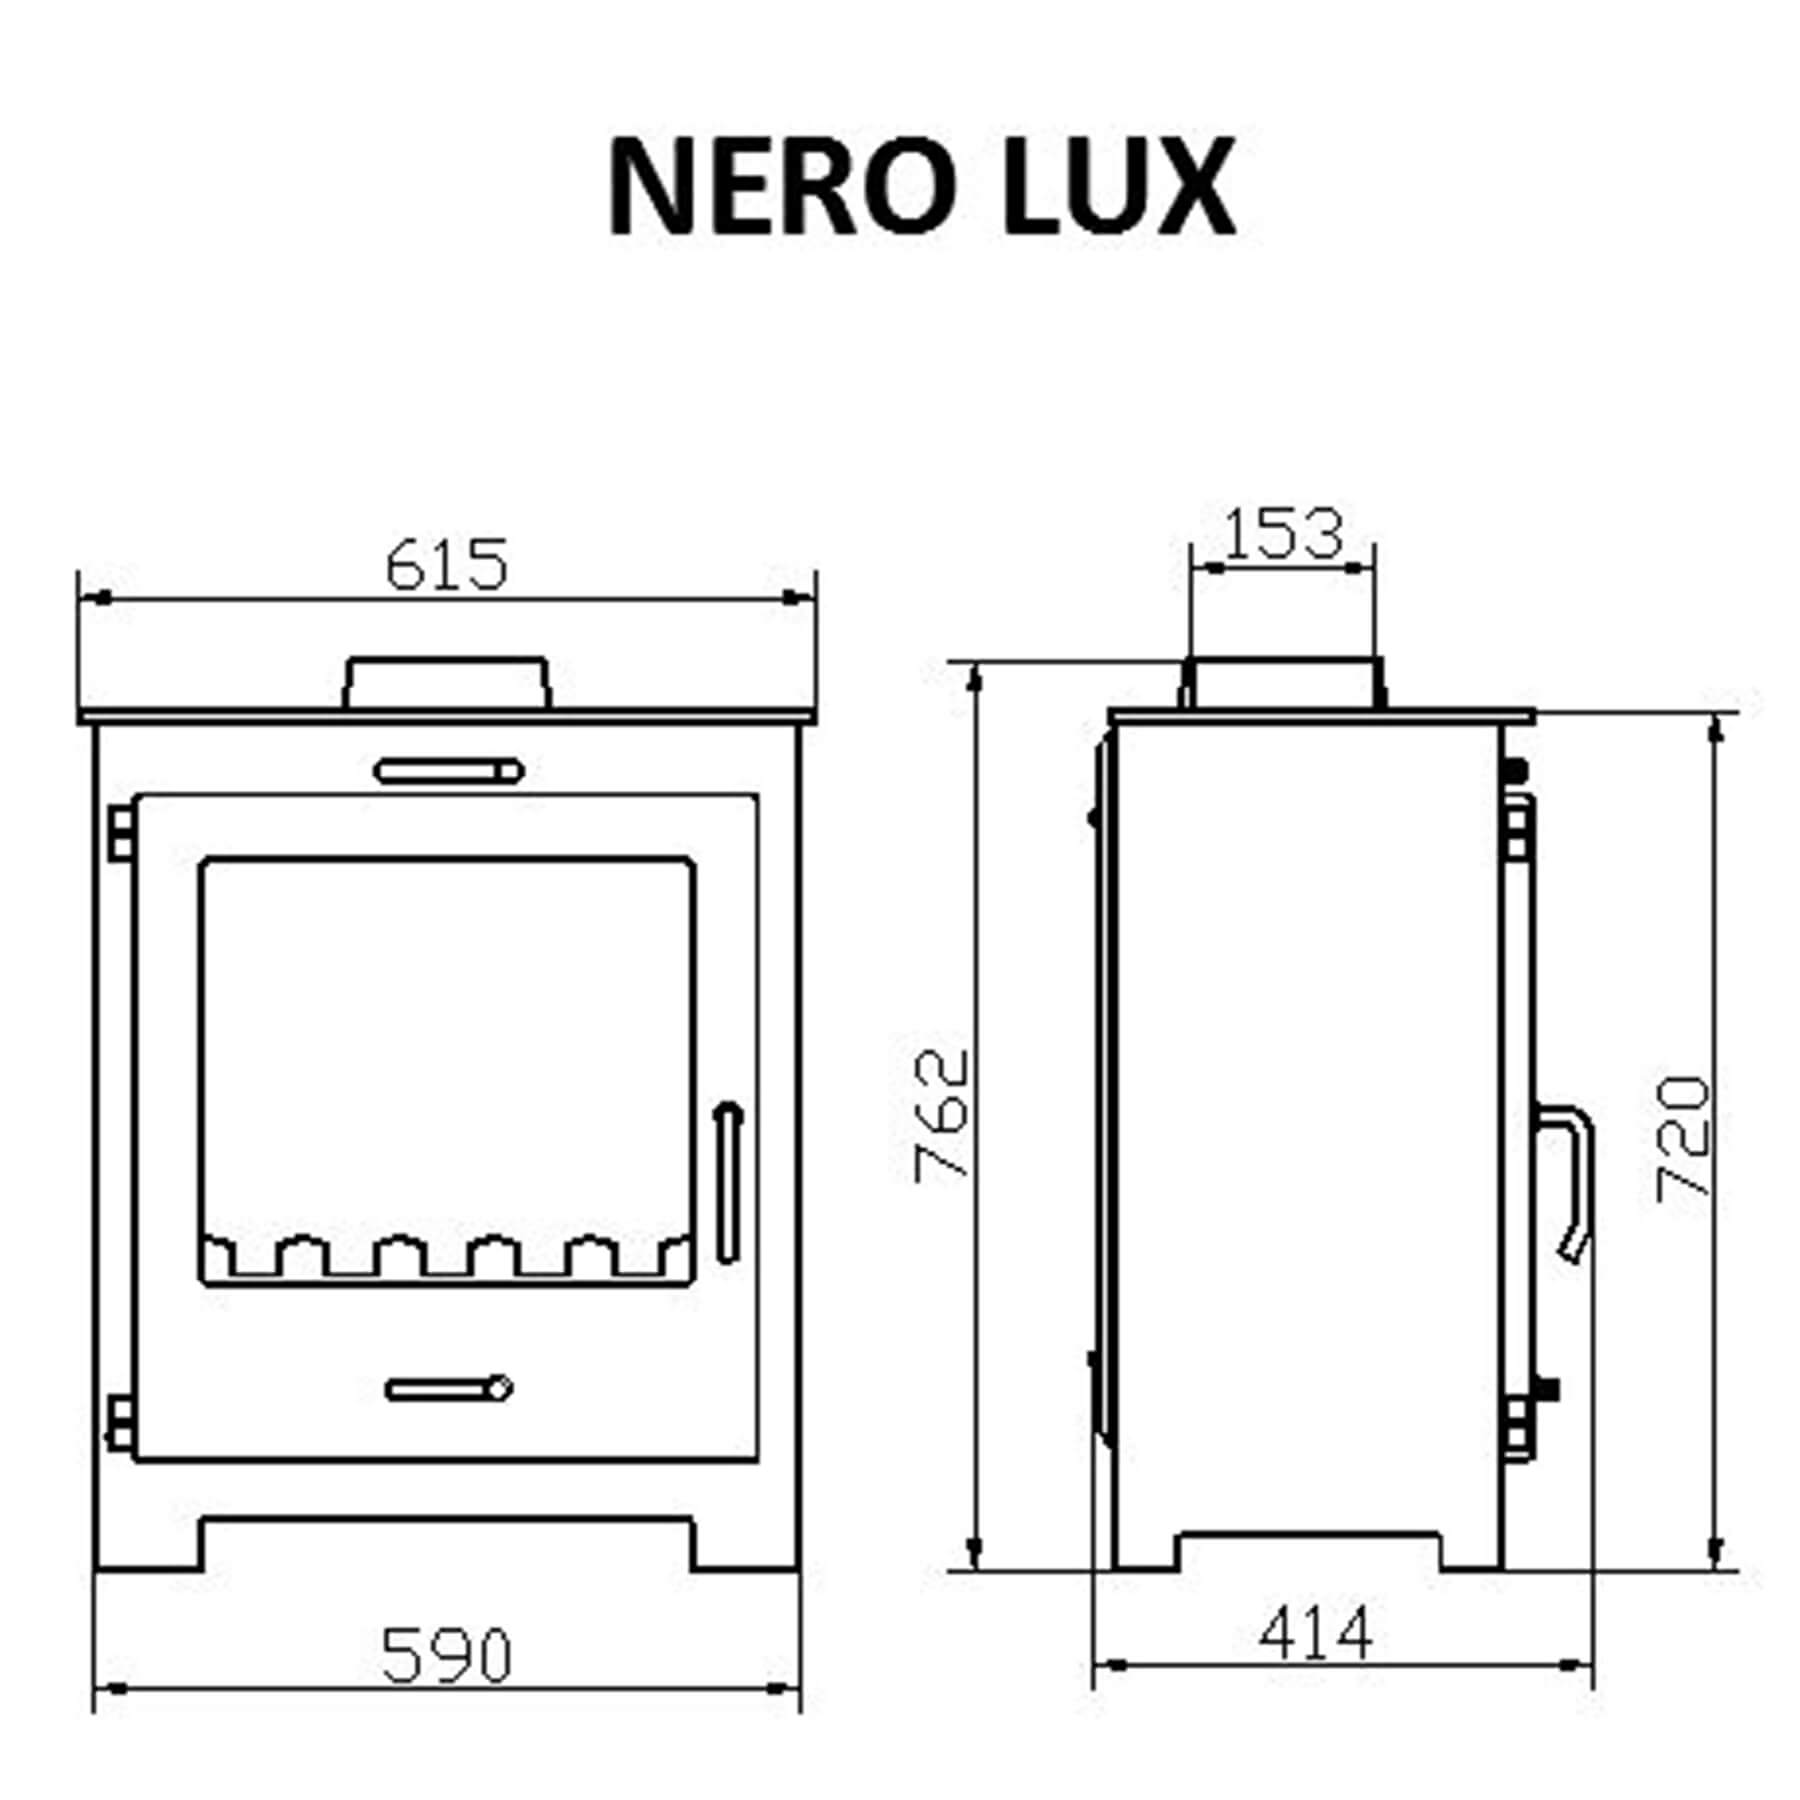 Technical-Specifications-Nero-Lux-Fireplace